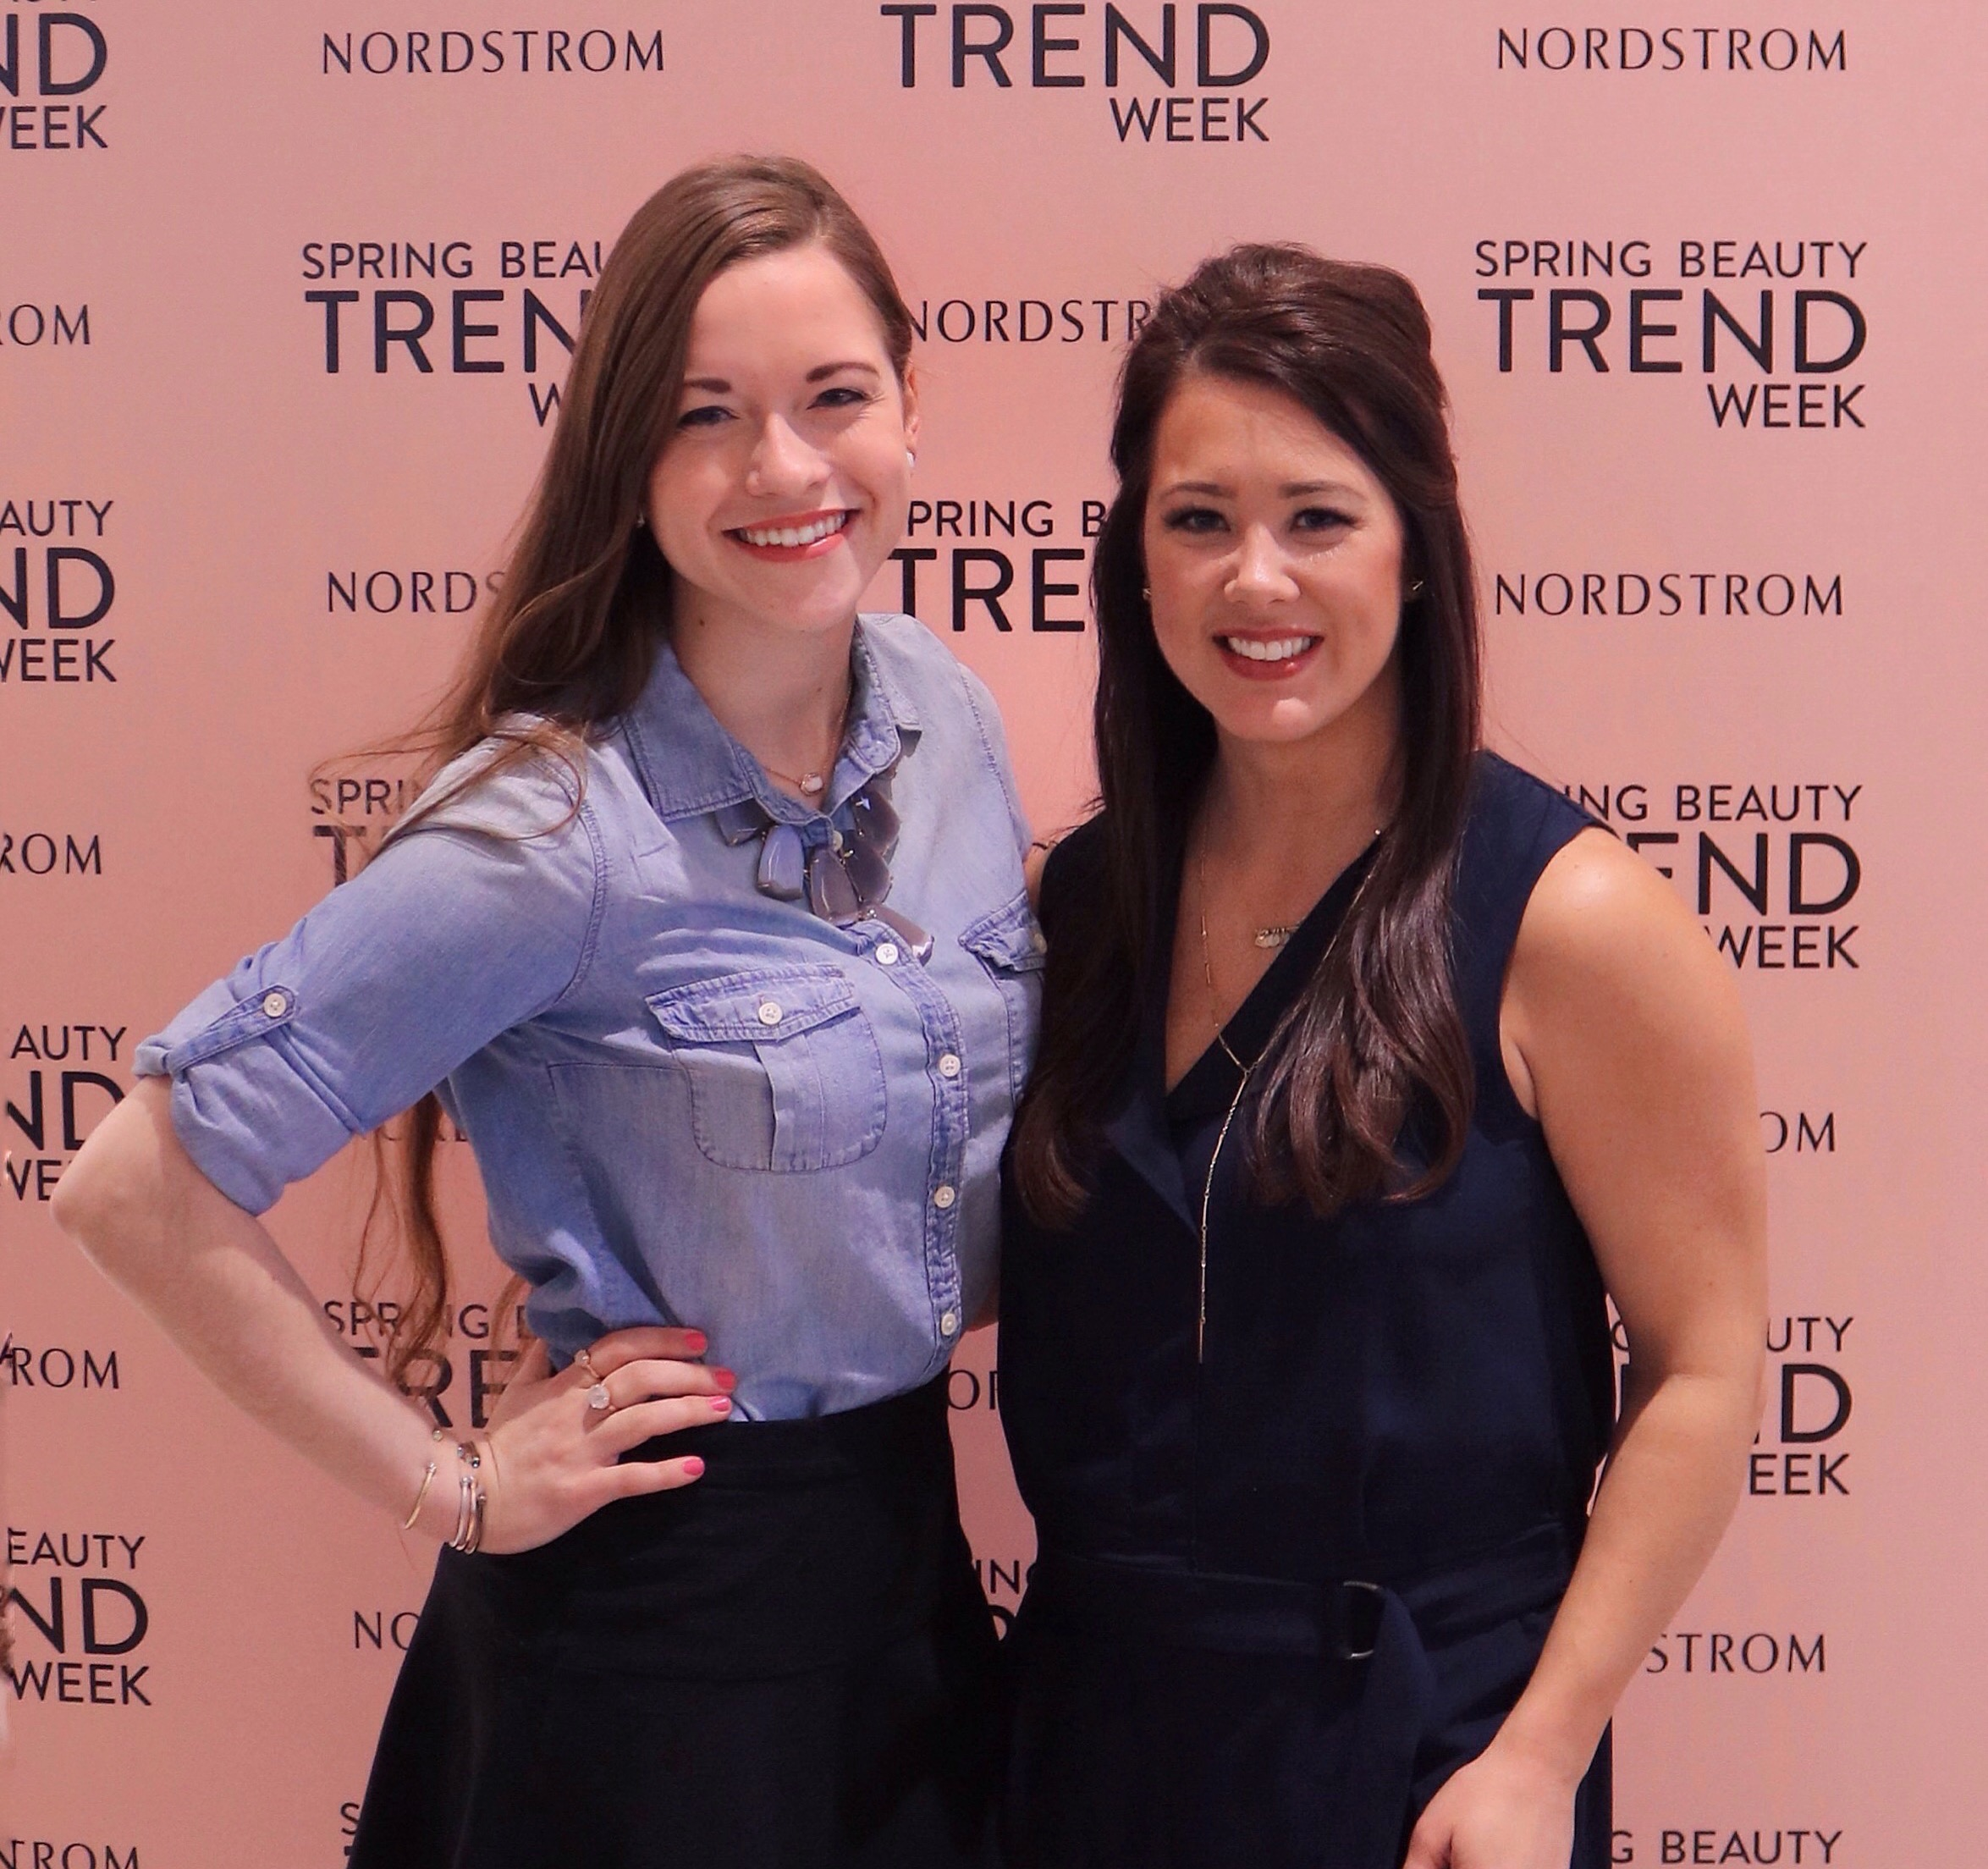 Megan Rogers-Reilley and Kelly Edwards Nordstrom Beauty Trend Show Spring 2016 Chicago Bowtiful Life